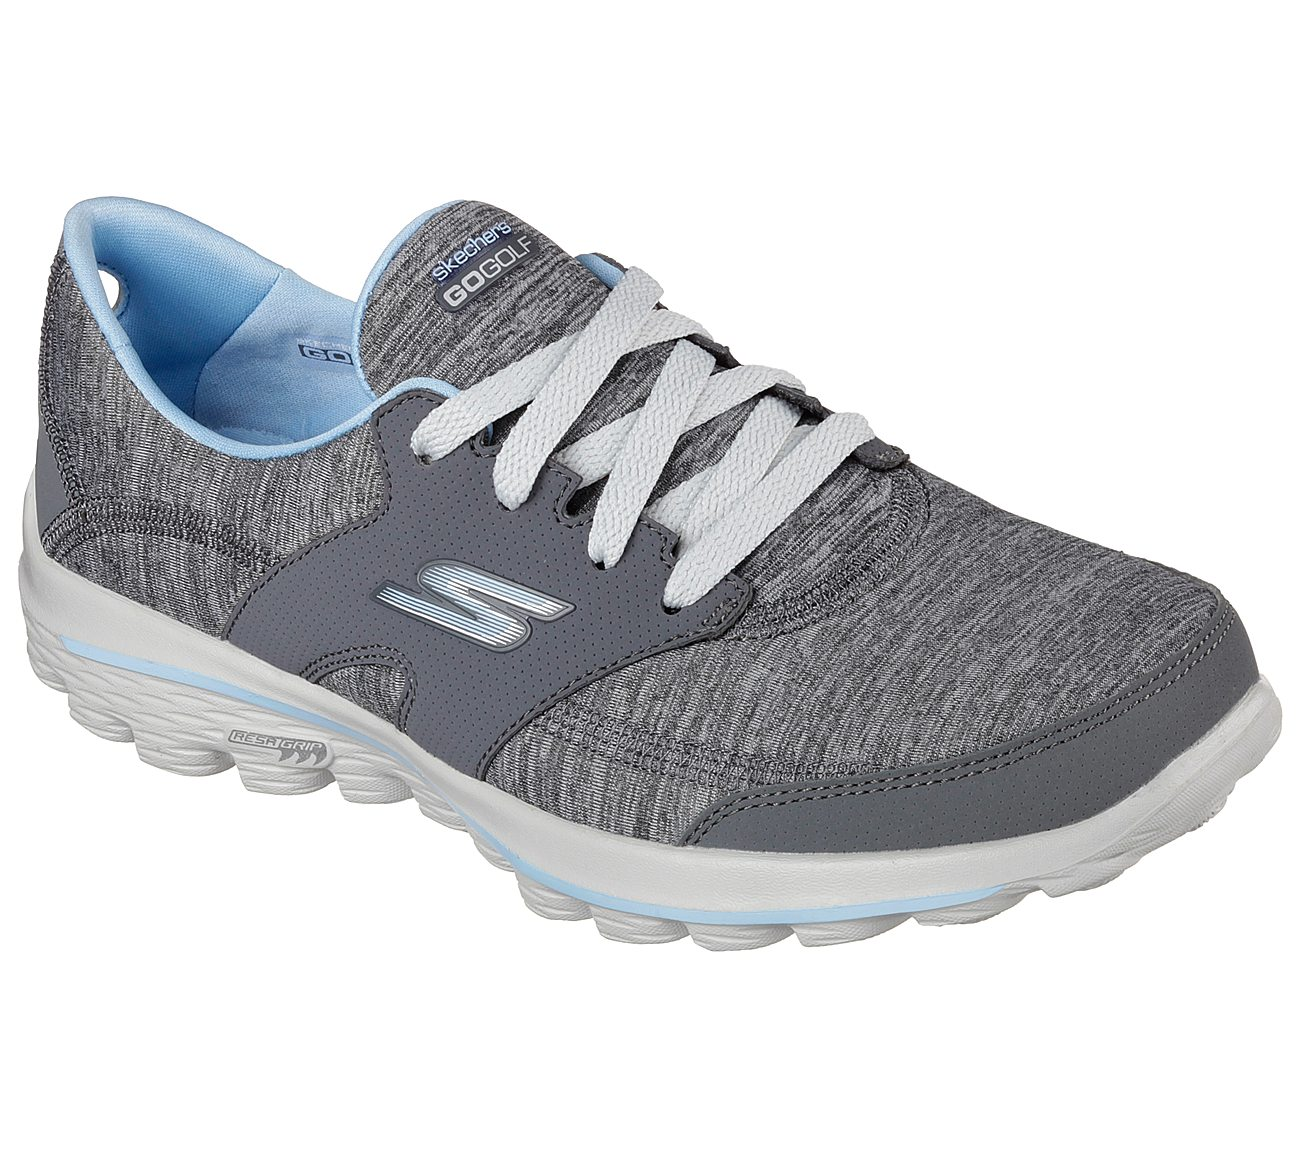 69d1ba01e6 sketcher wide shoes sale   OFF36% Discounted